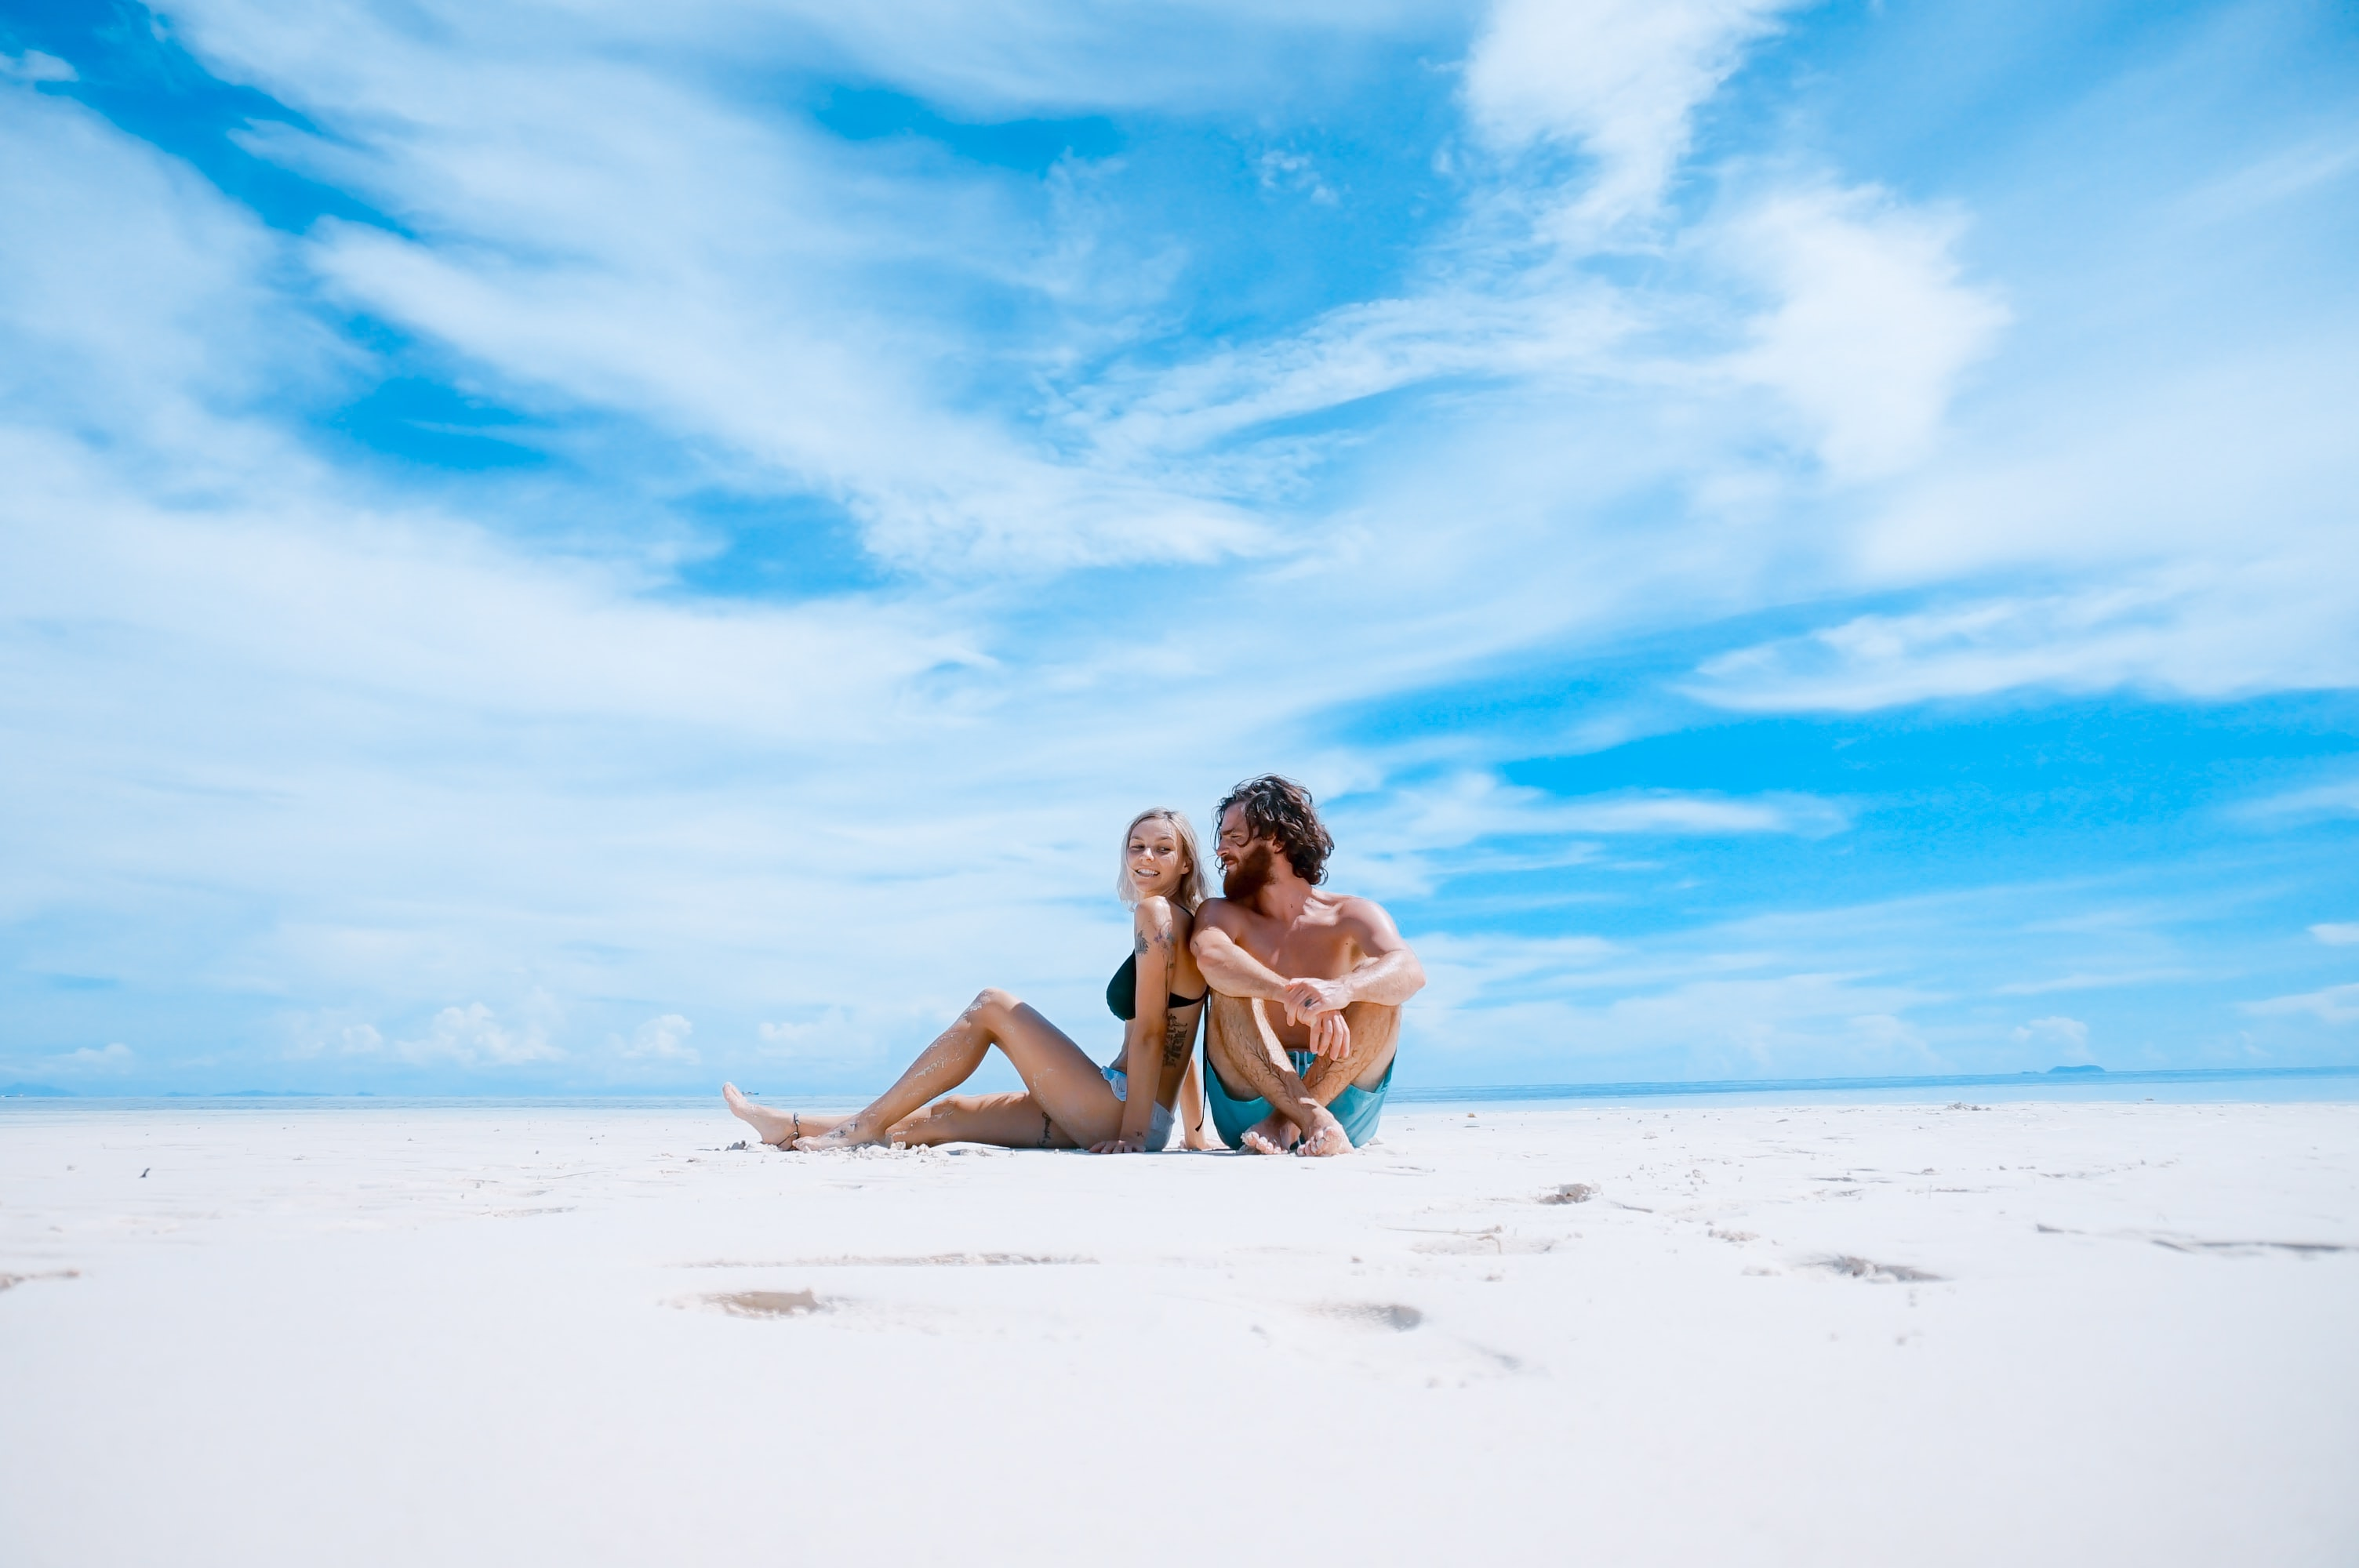 A couple sitting close to each other on a white sandy beach